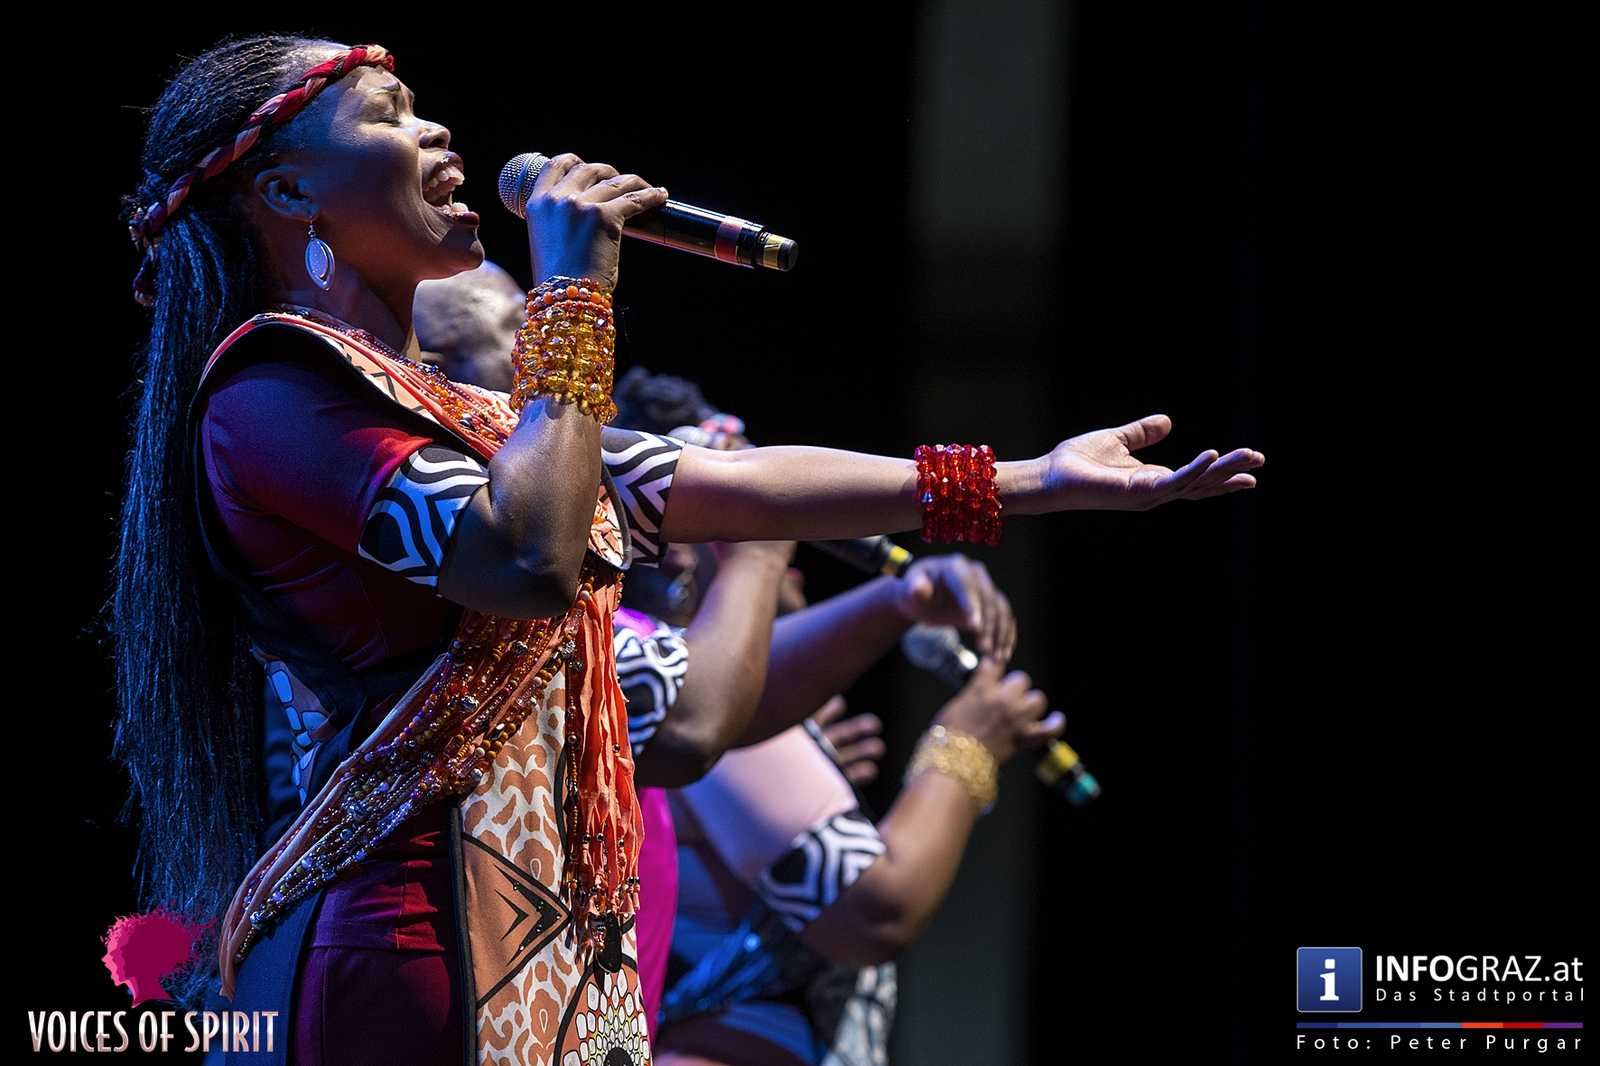 soweto gospel choir internationales chorfestival statdthalle graz voices of spirit eroeffnung festivals 2016 135